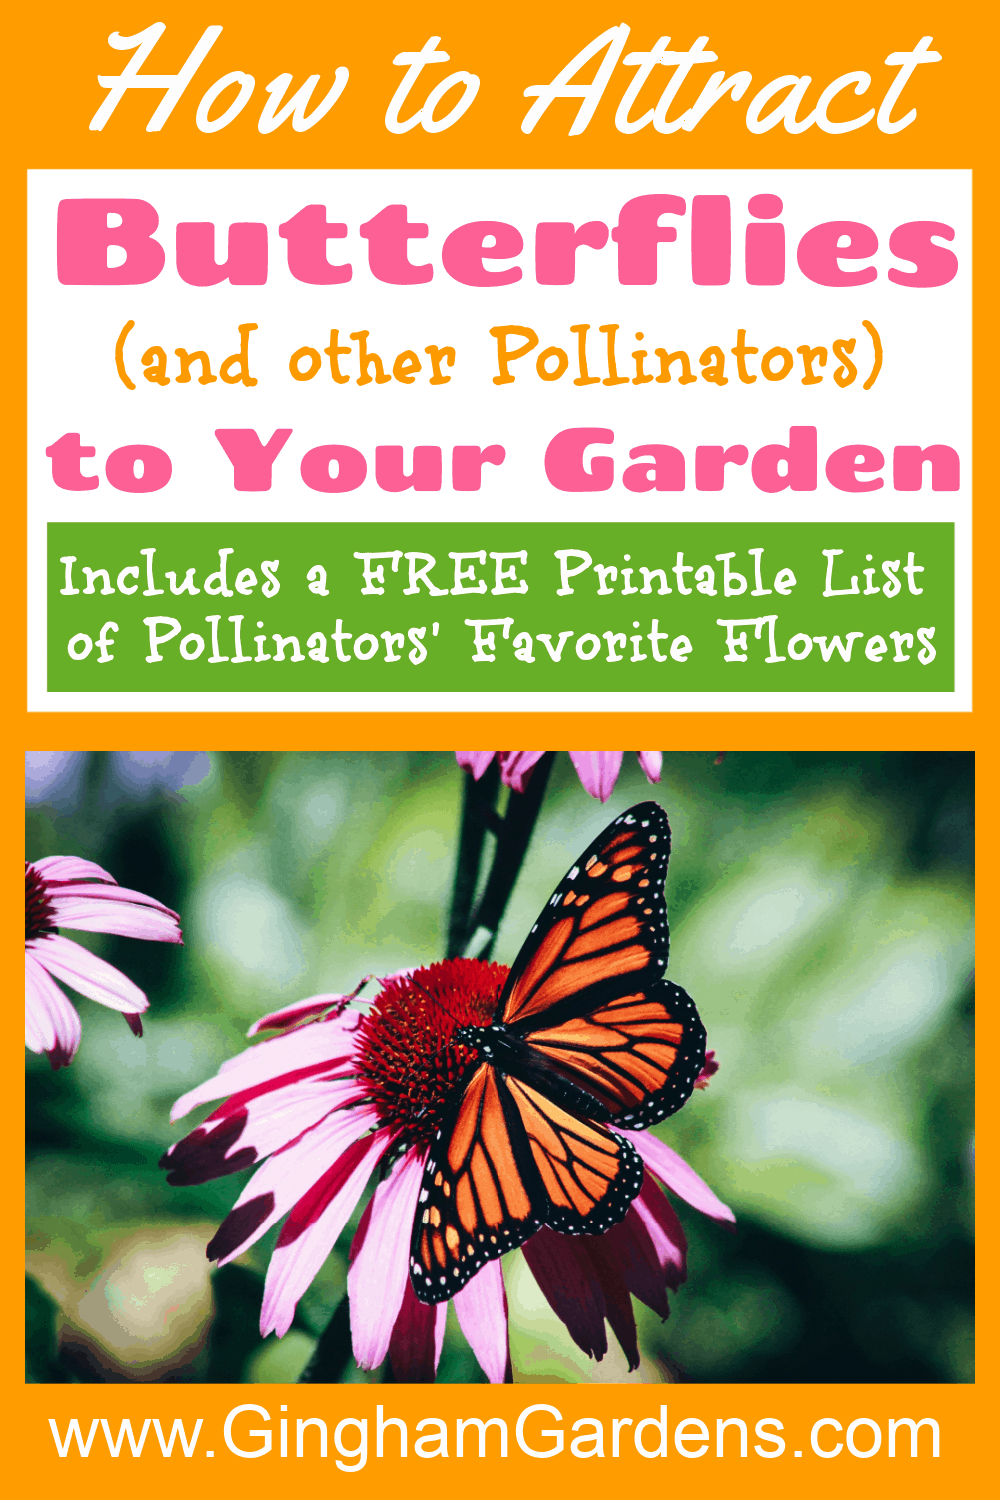 Image of a butterfly on a flower with text overlay - how to attract butterflies to your garden